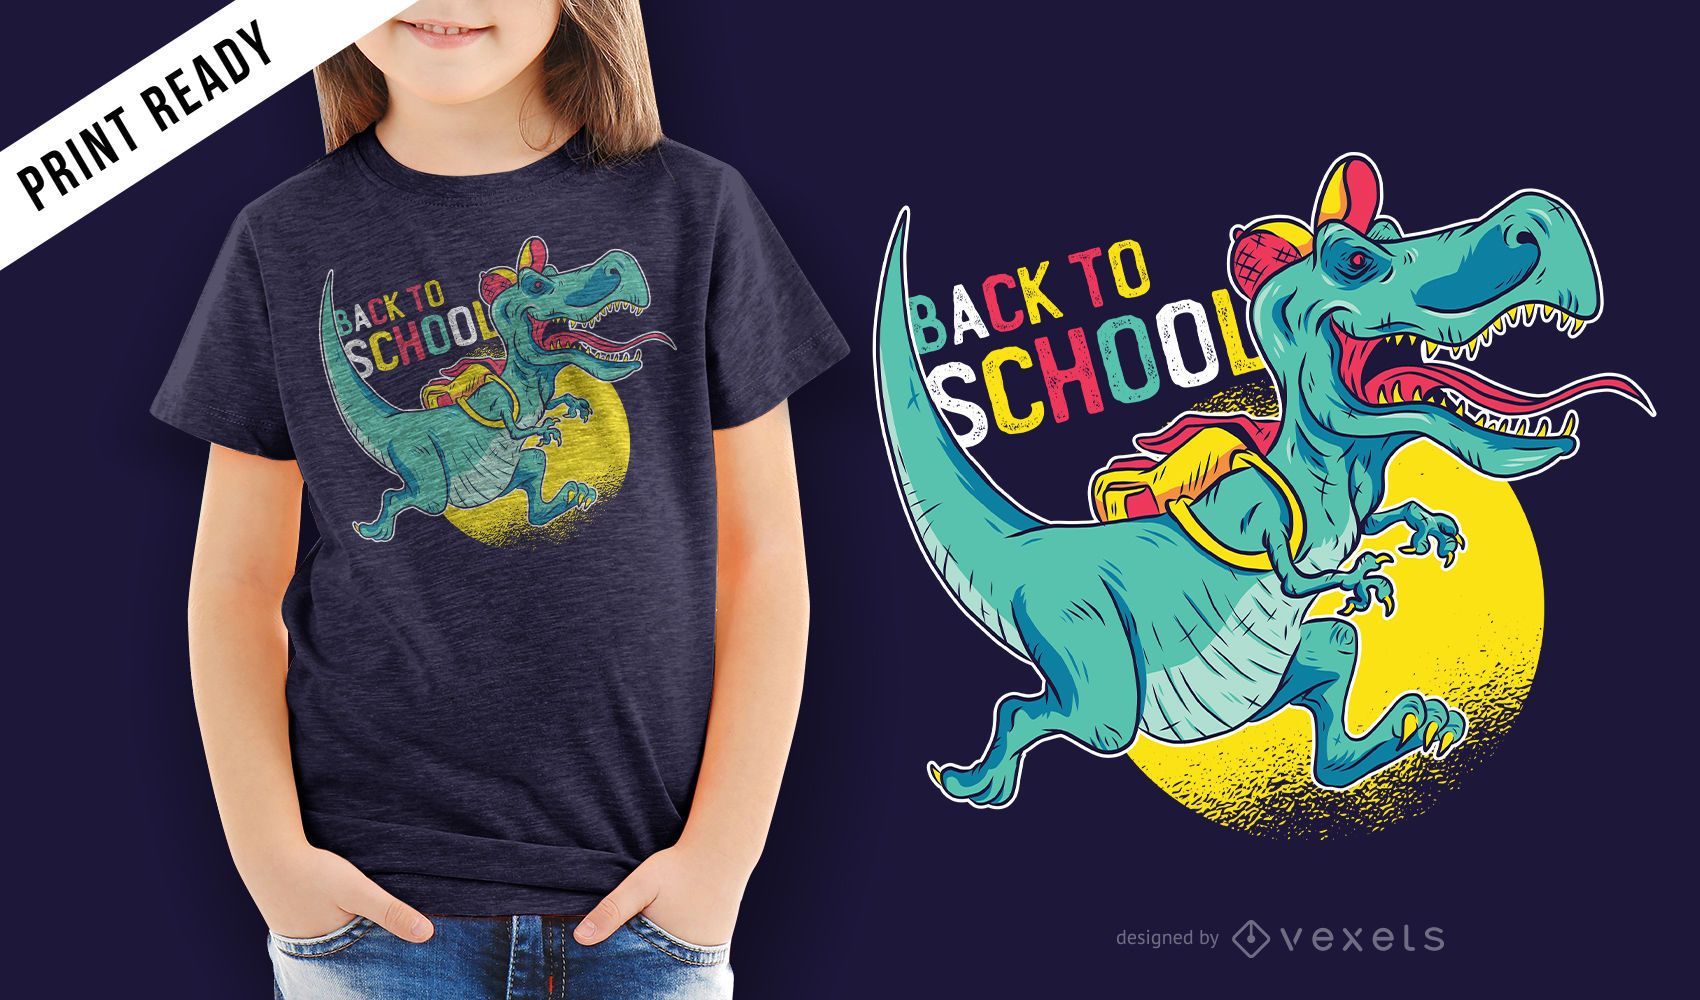 8227a72b ... Dinosaur Children T-shirt Design. Download Large Image 1700x1000px